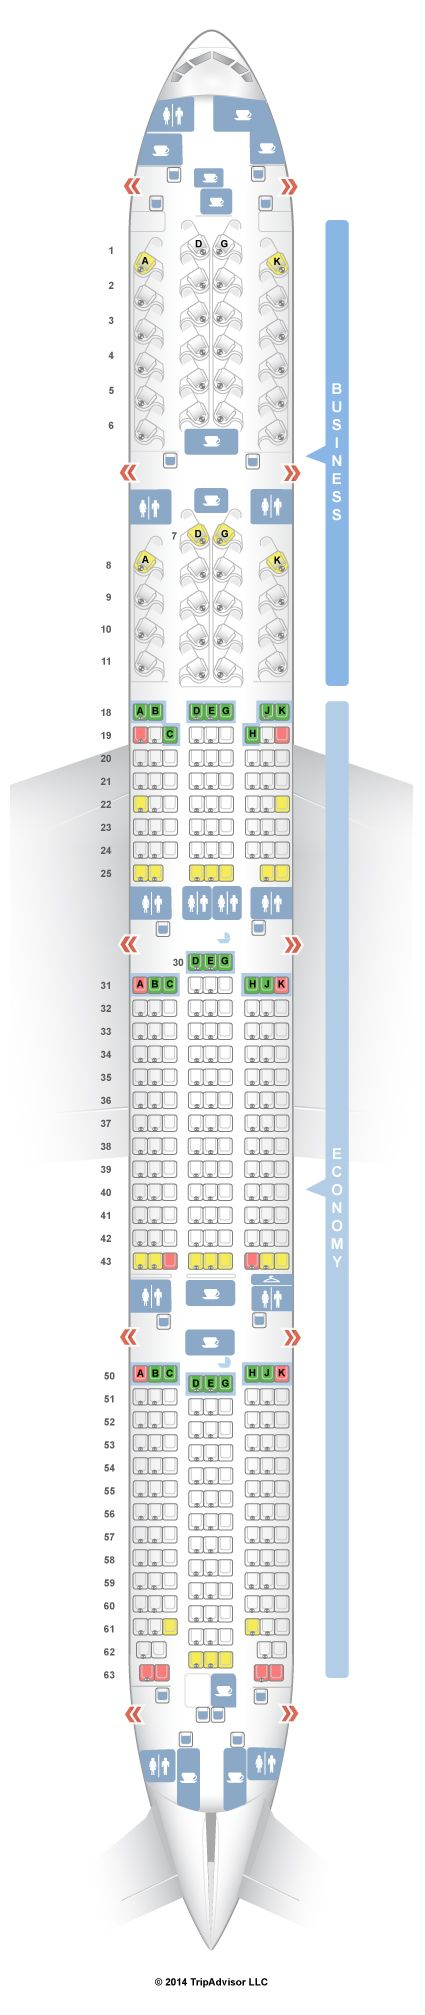 SeatGuru Seat Map Air Canada Boeing 777-300ER (77W) Two Class